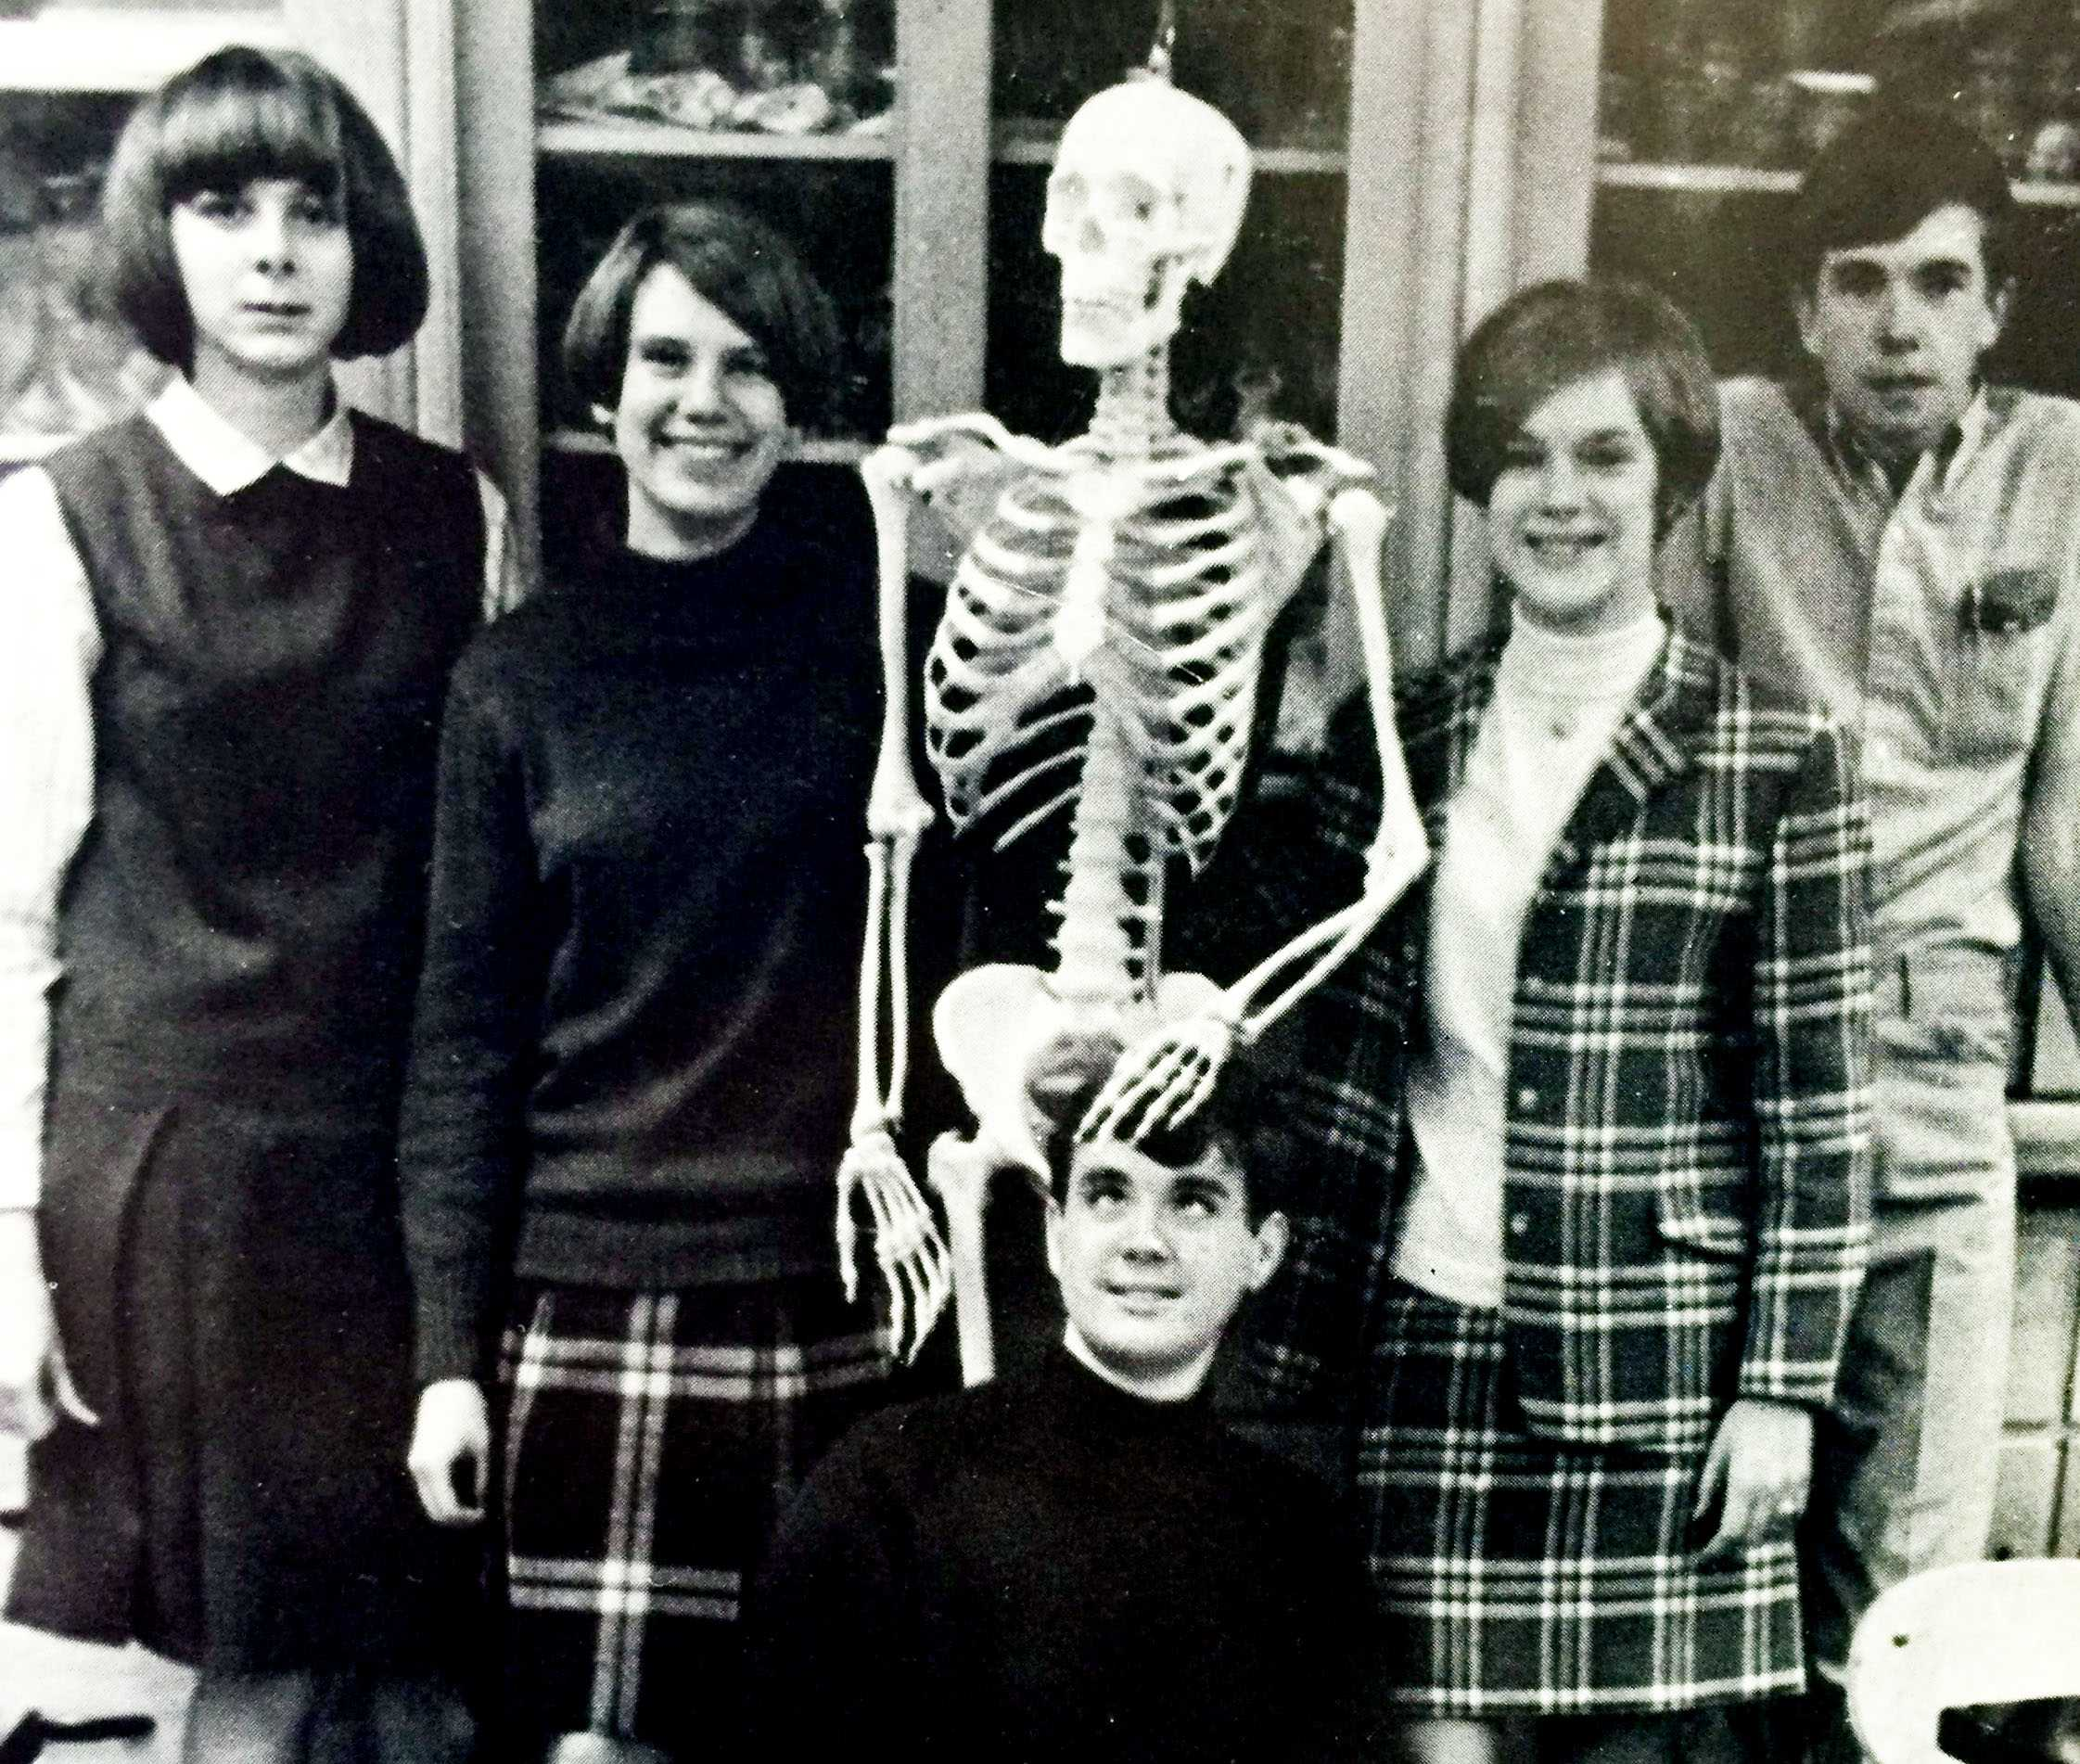 Biology Club photo from the 1969 Red & Black yearbook.